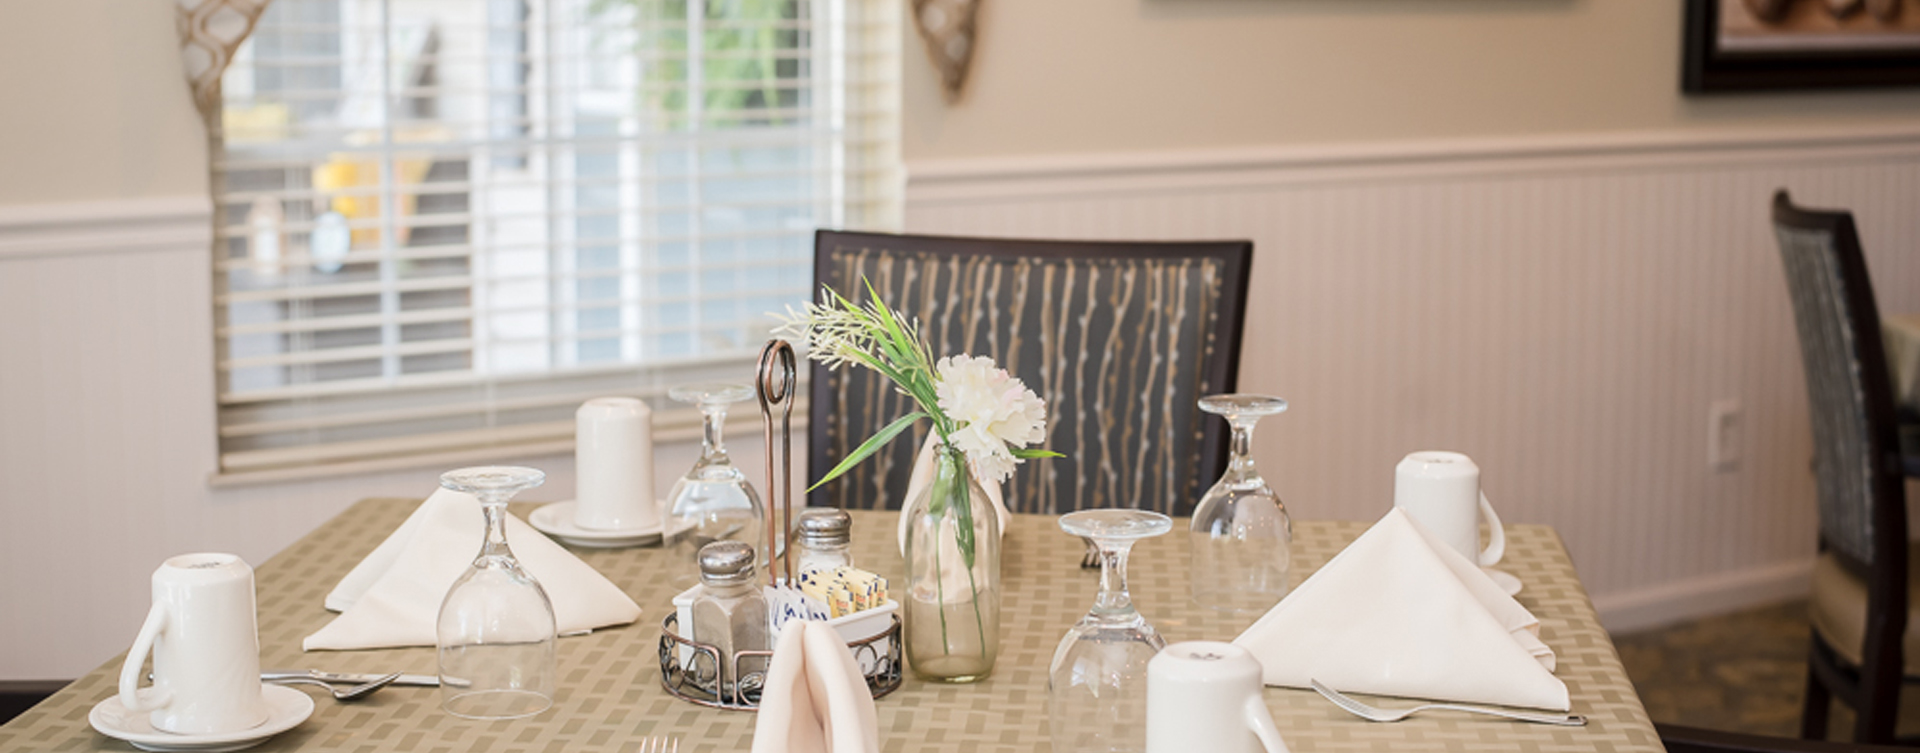 Food is best when shared with friends in the dining room at Bickford of Sioux City